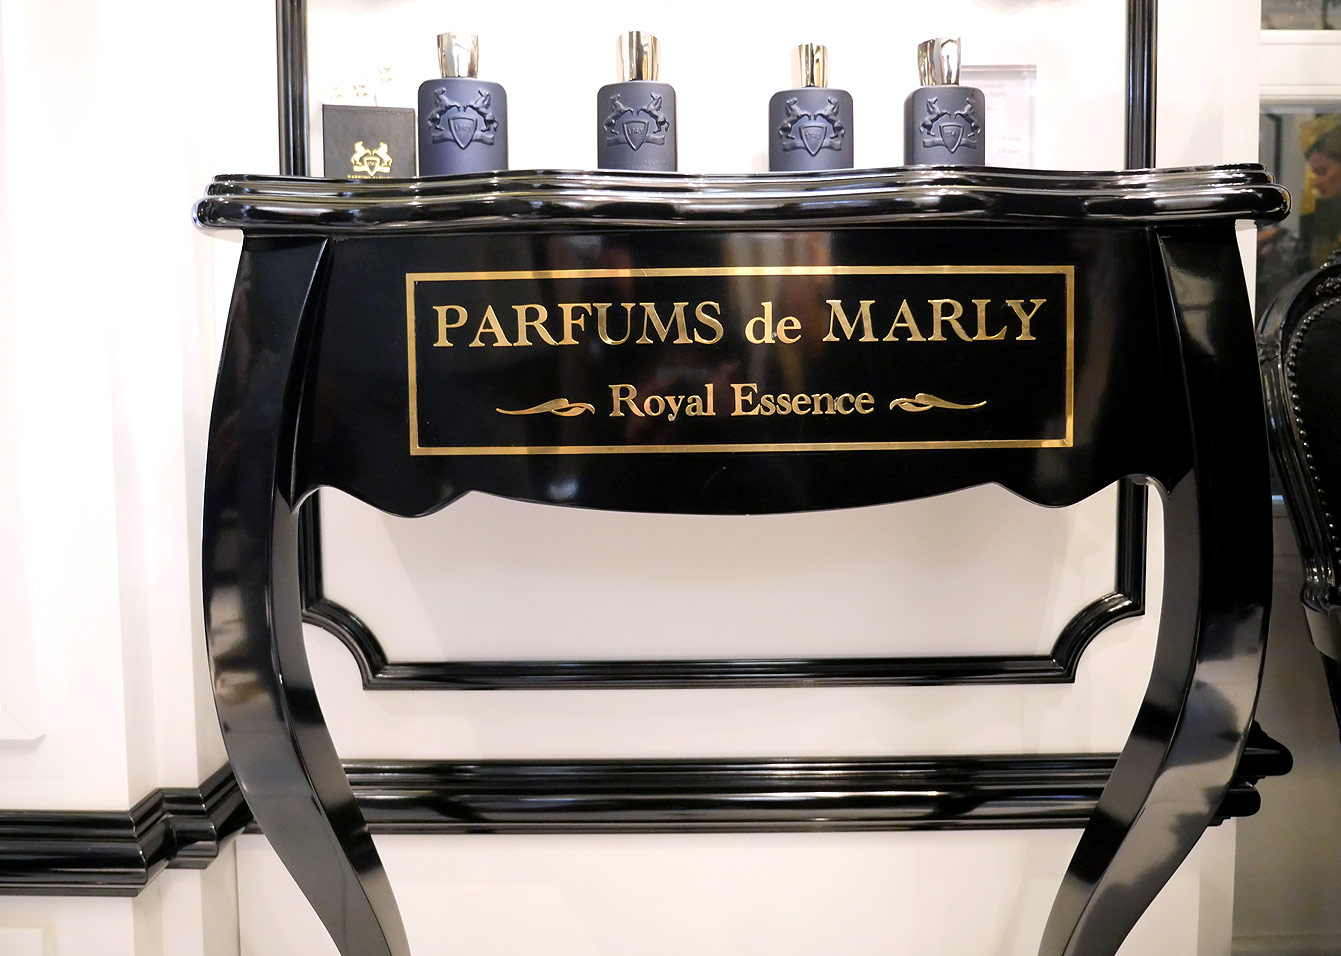 marly-parfums-15